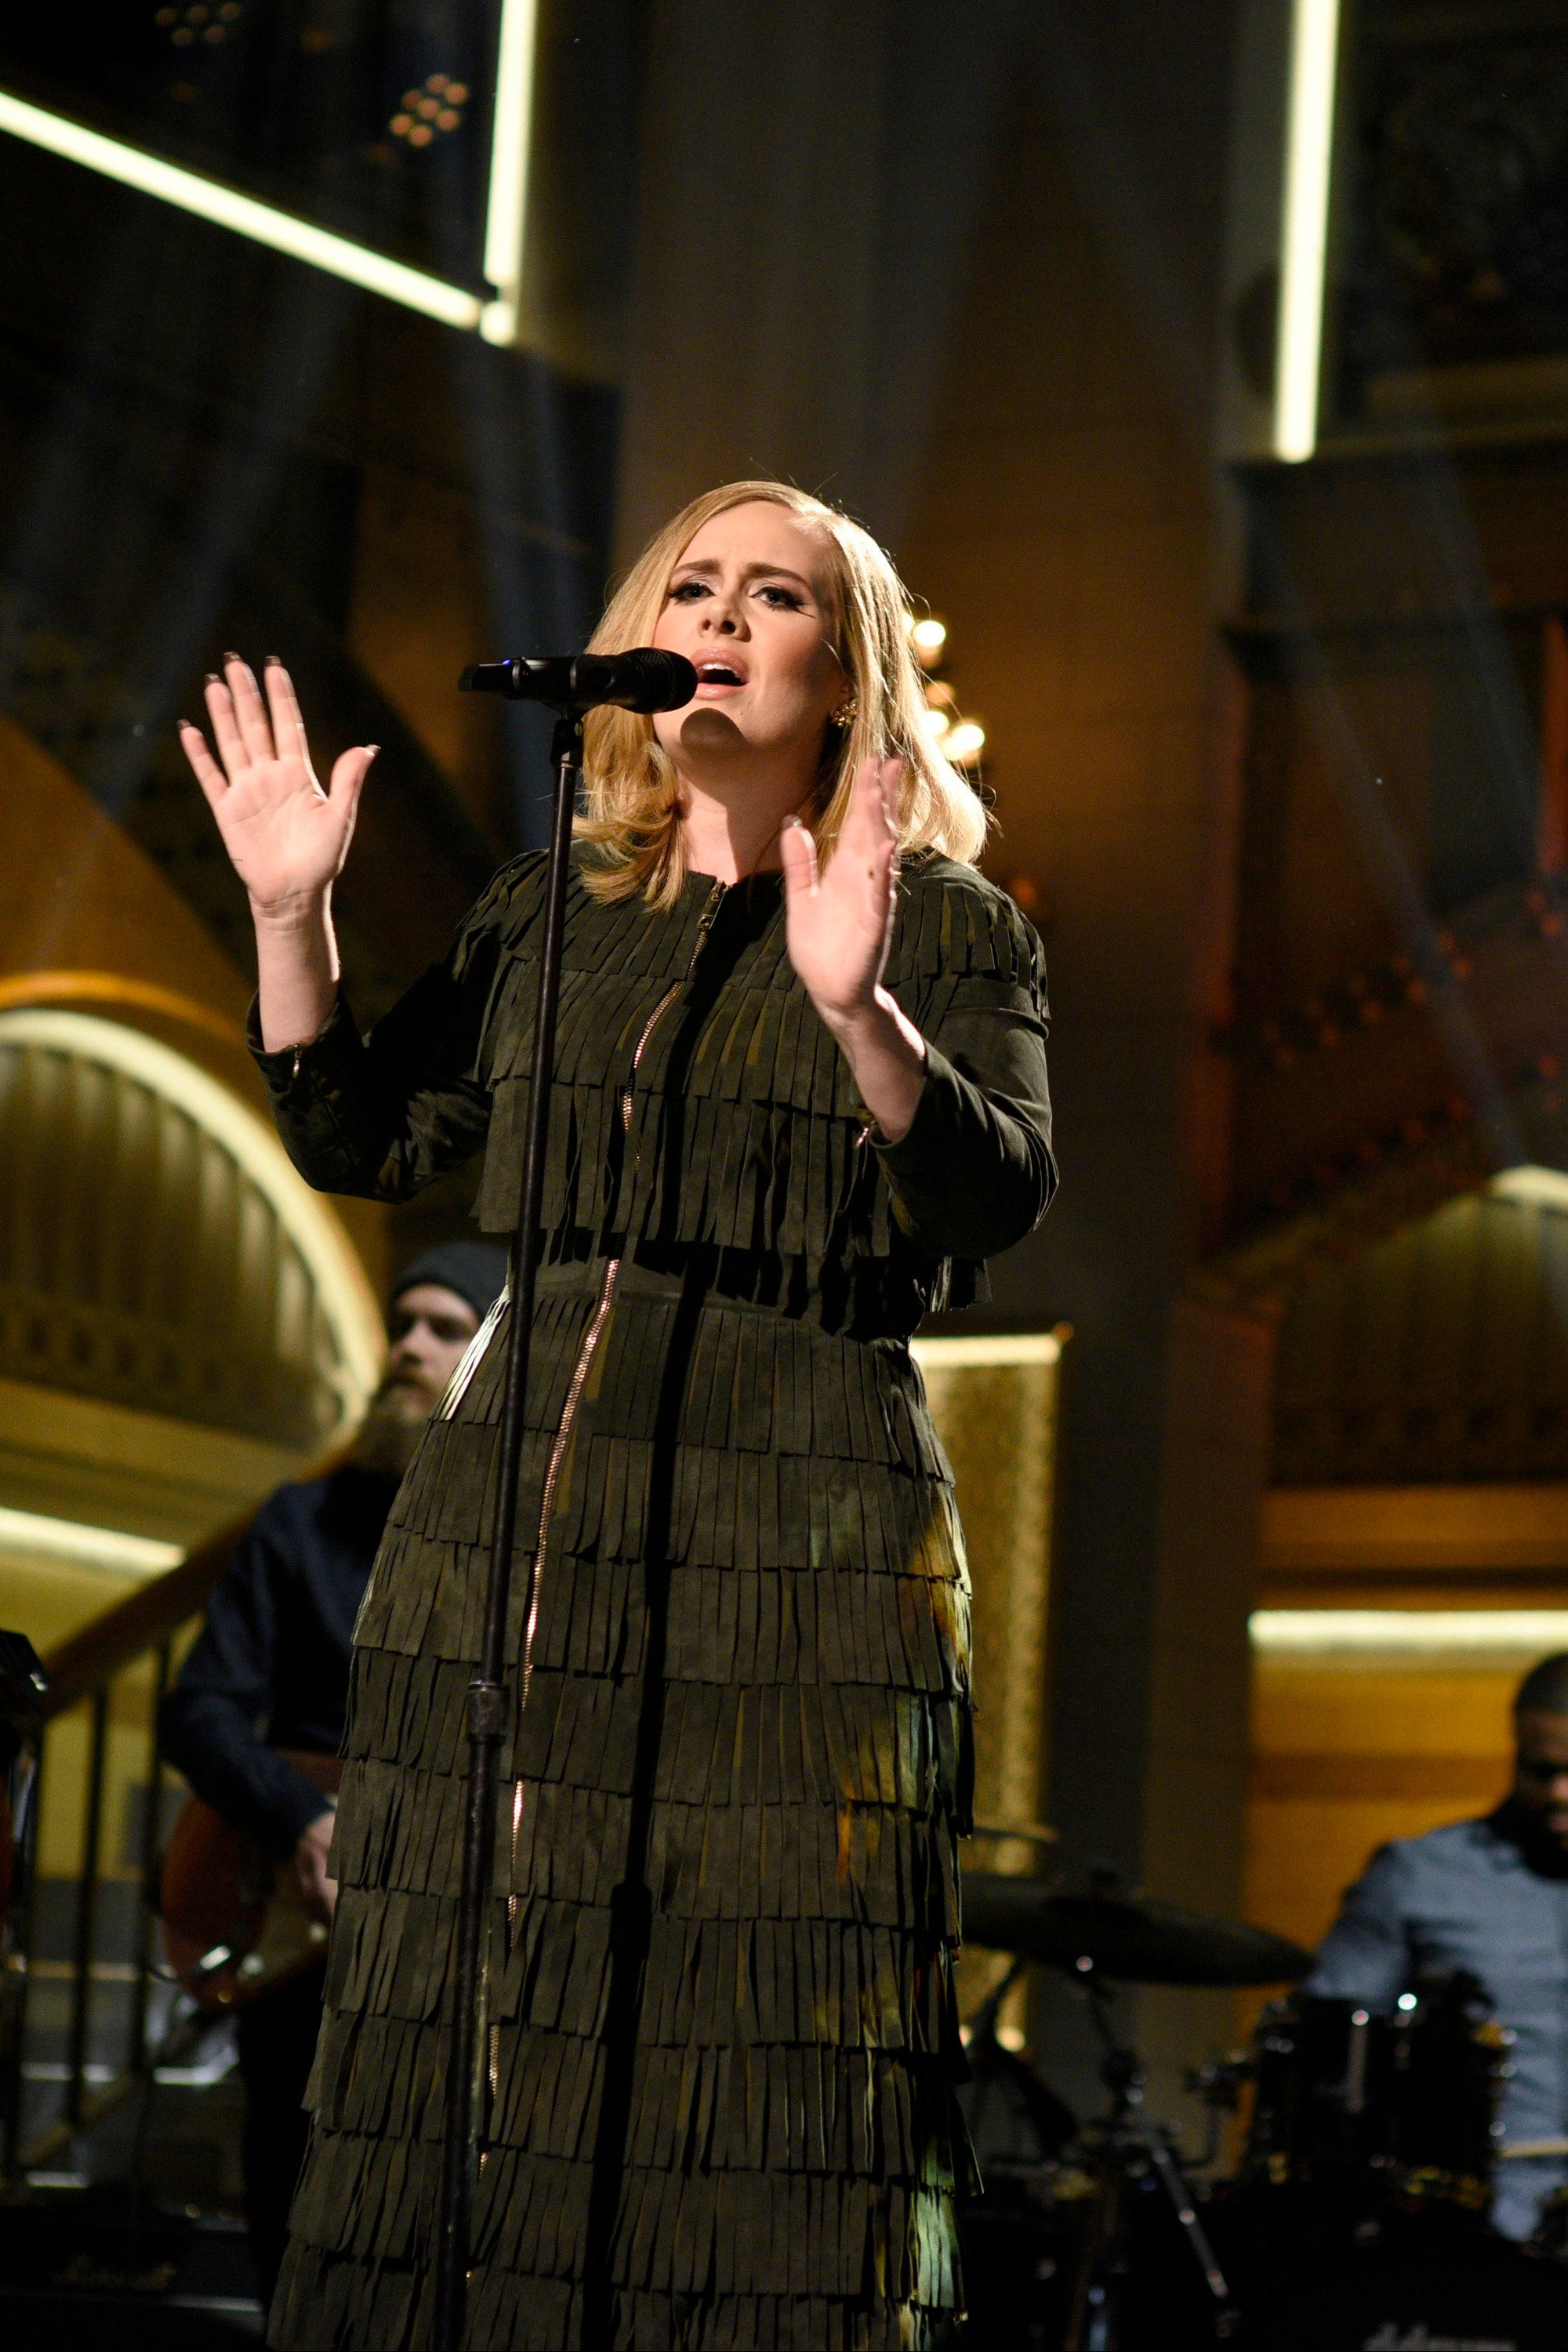 SATURDAY NIGHT LIVE -- 'Matthew McConaughey' Episode 1689 -- Pictured: Musical guest Adele performs on November 21, 2015 -- (Photo by: Dana Edelson/NBC/NBCU Photo Bank via Getty Images)